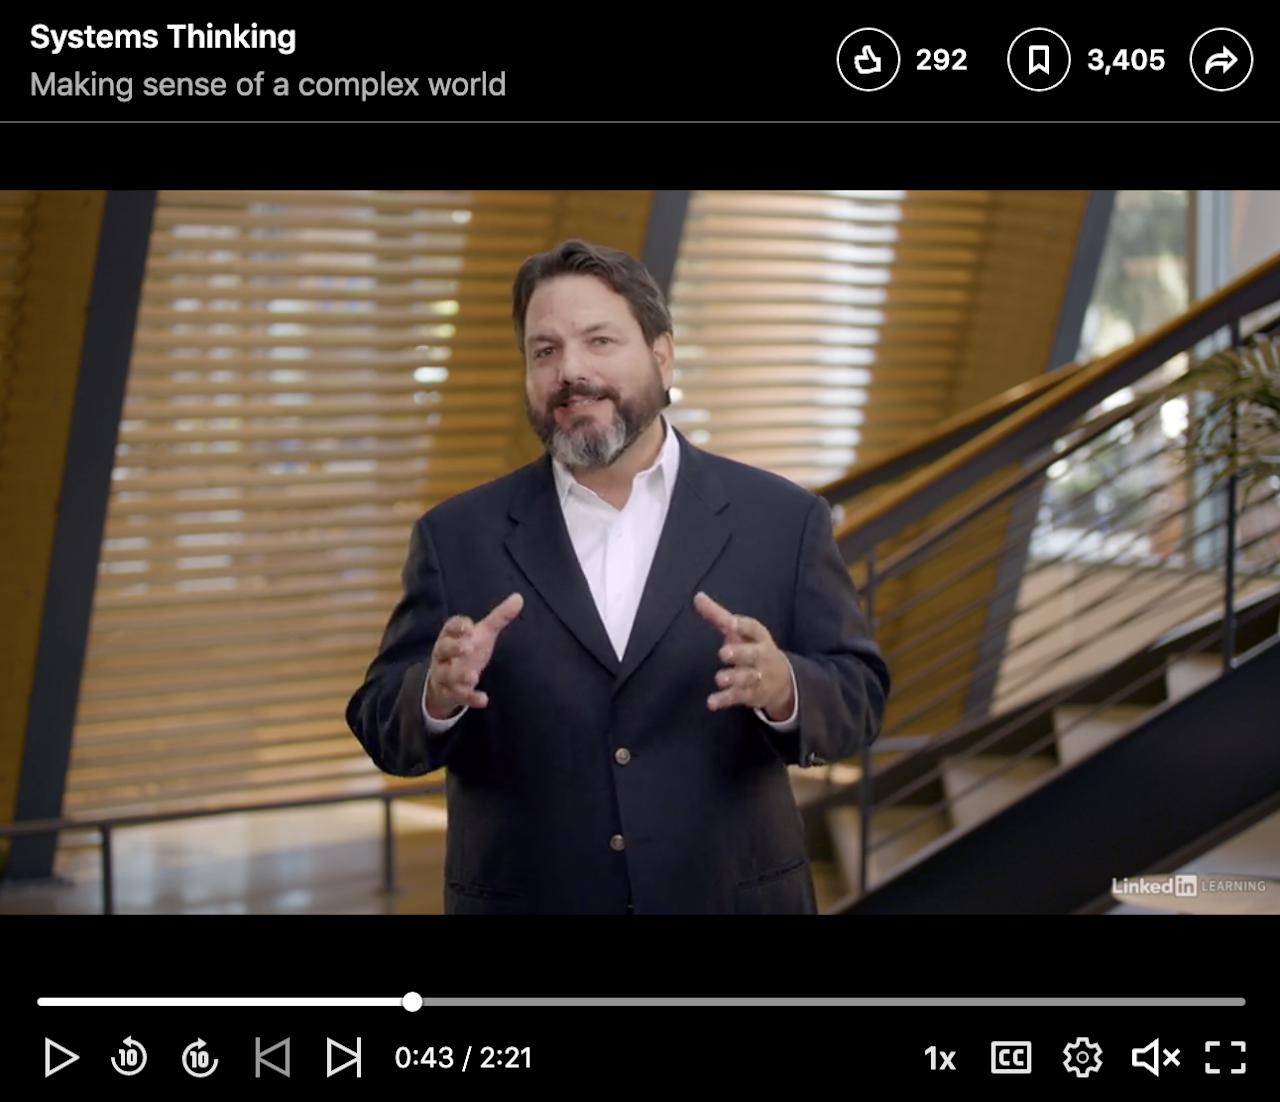 LinkedIn Learning Introduction to  Systems Thinking (online)